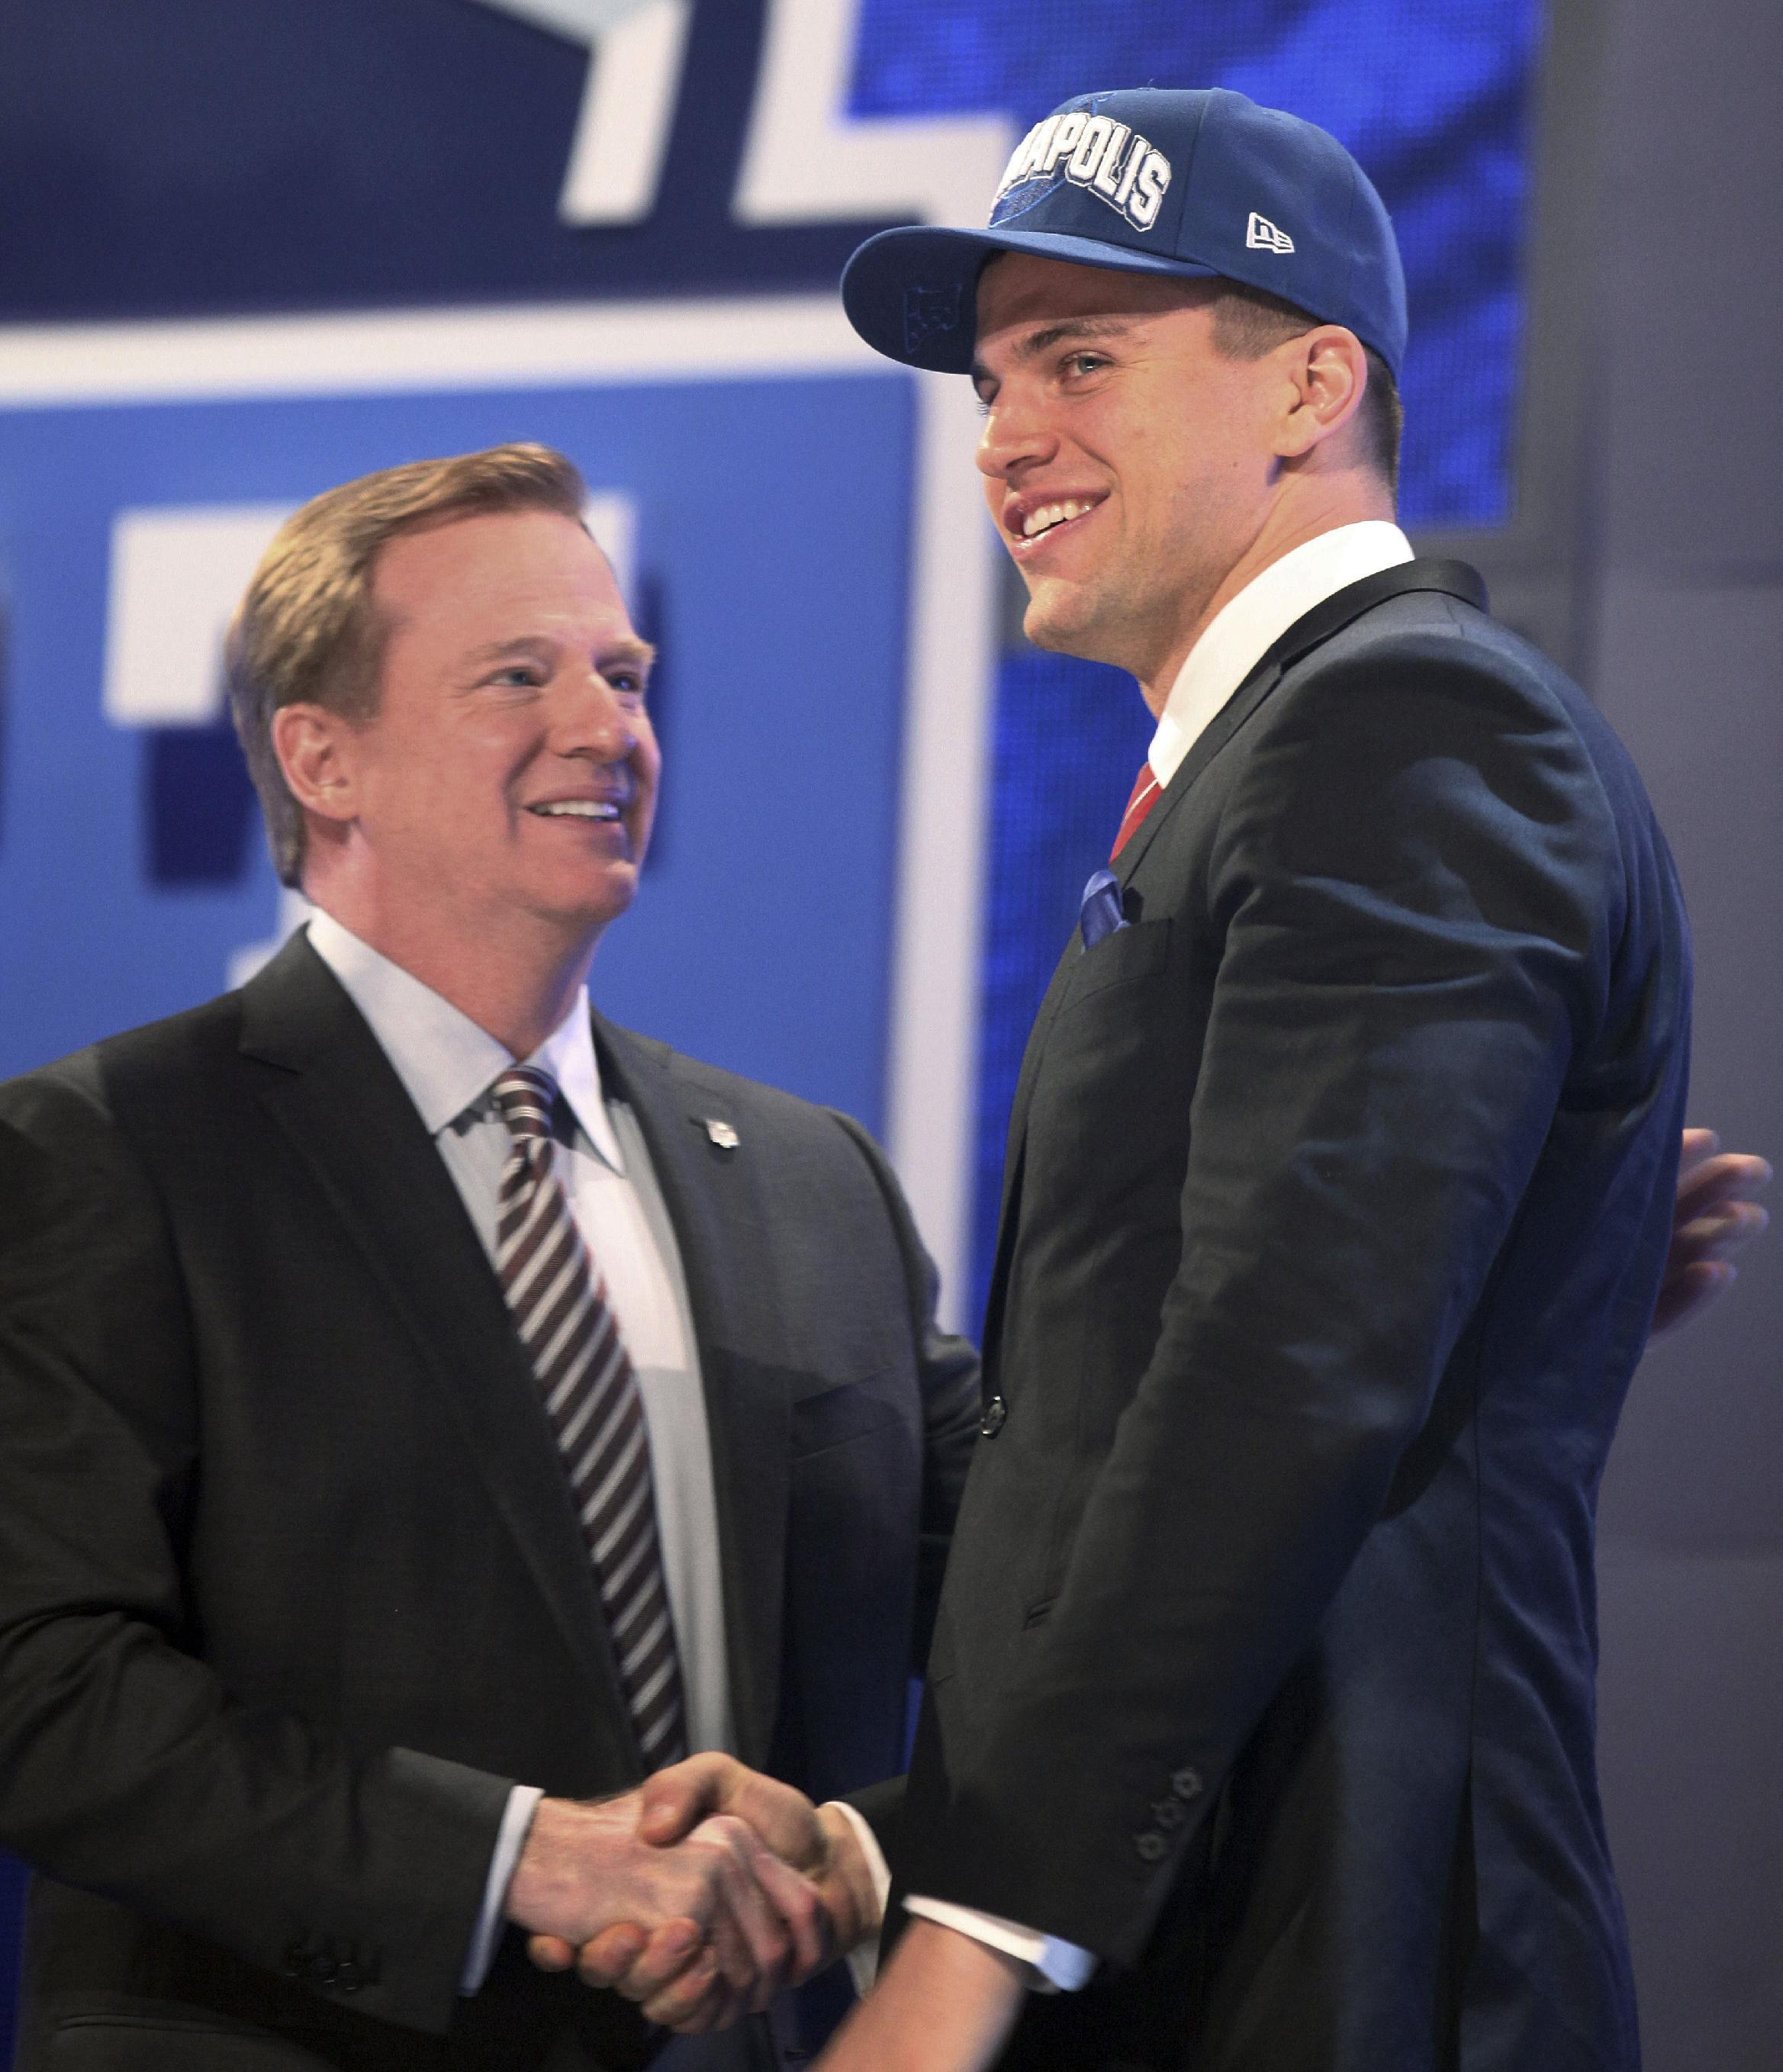 Stanford tight end Coby Fleener reacts after being selected 34th overall by the Indianapolis Colts in the second round of the NFL football draft at Radio City Music Hall, Friday, April 27, 2012, in New York. (AP Photo/John Minchillo)